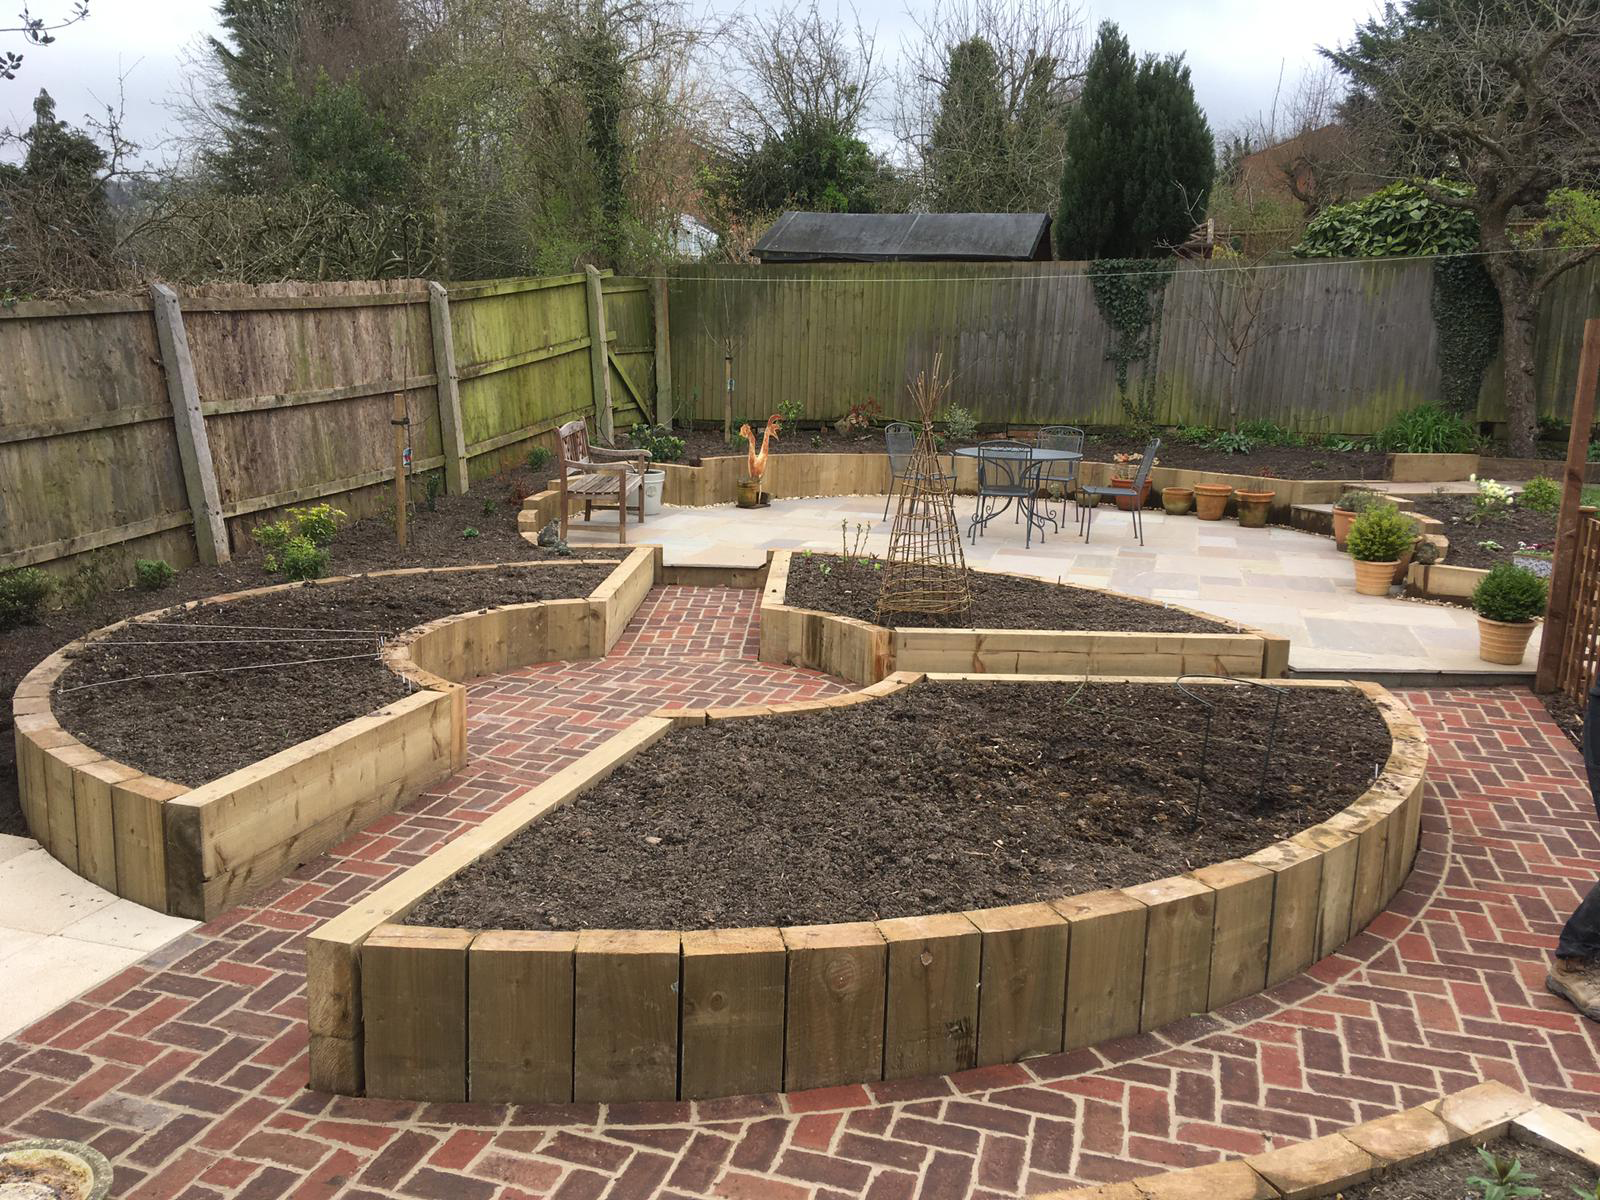 Creative landscaping with circular raised borders